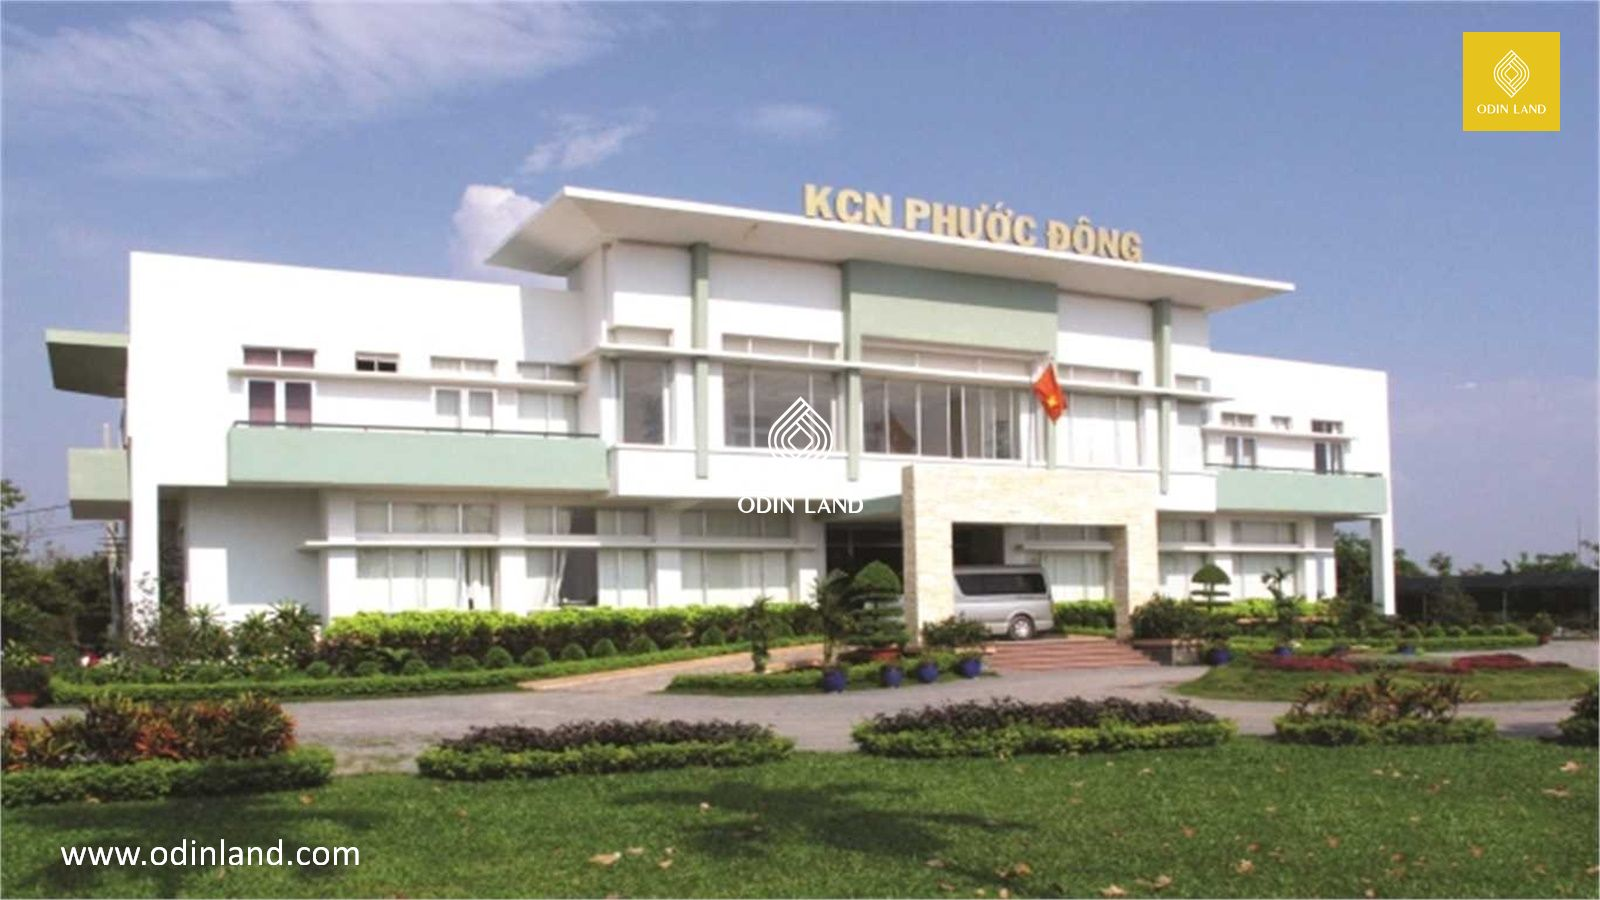 khu cong nghiep phuoc dong 1 result